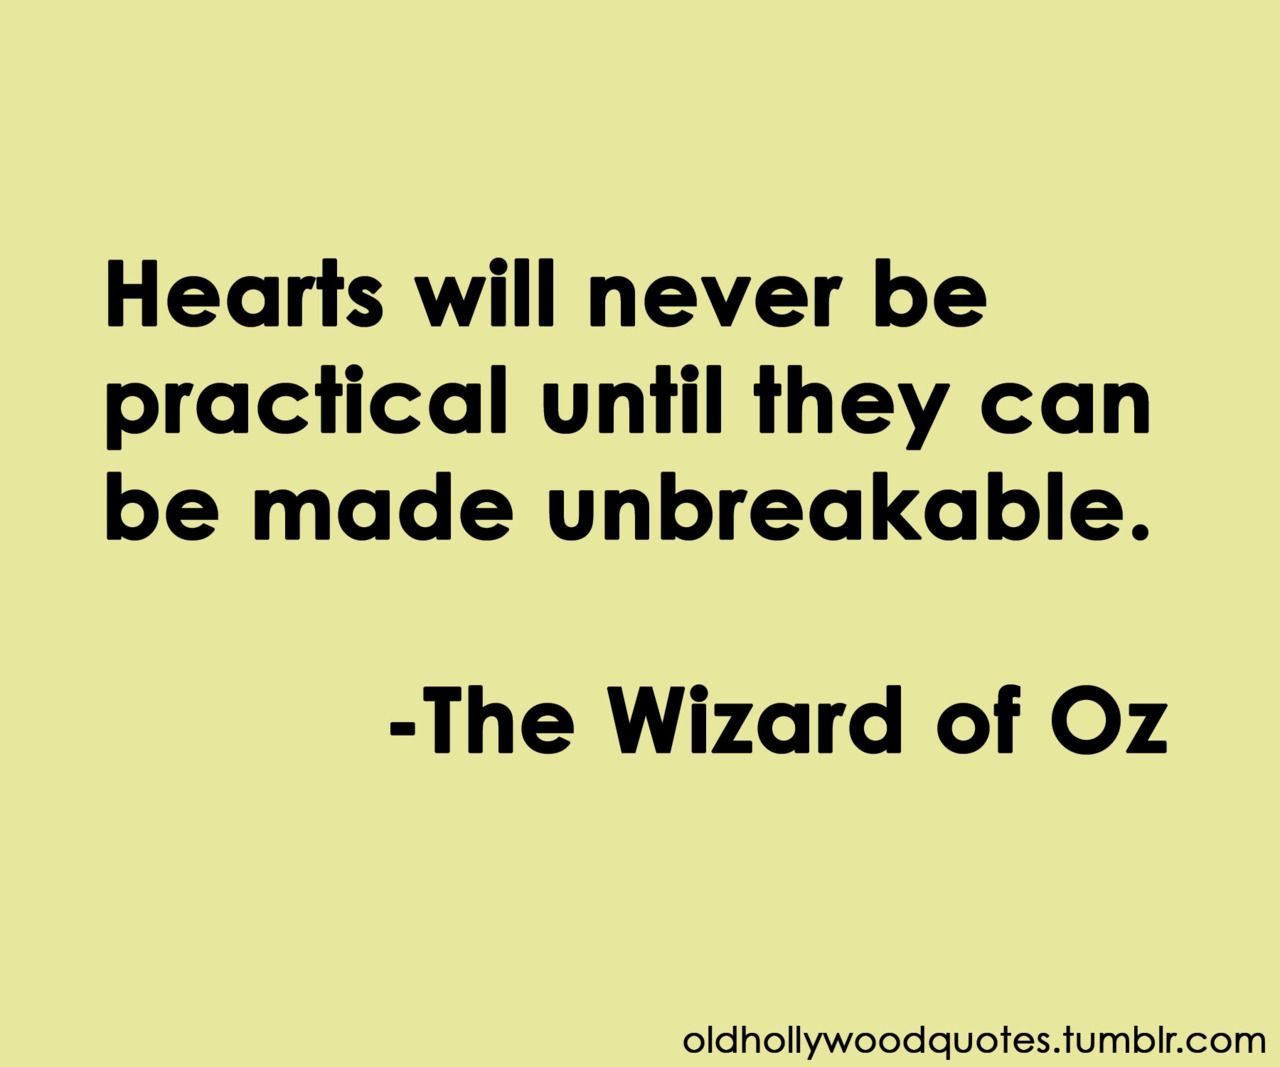 Wizard of oz quotes - The Wizard Of Oz Quotes Wizard Of Oz Friendship Quotes